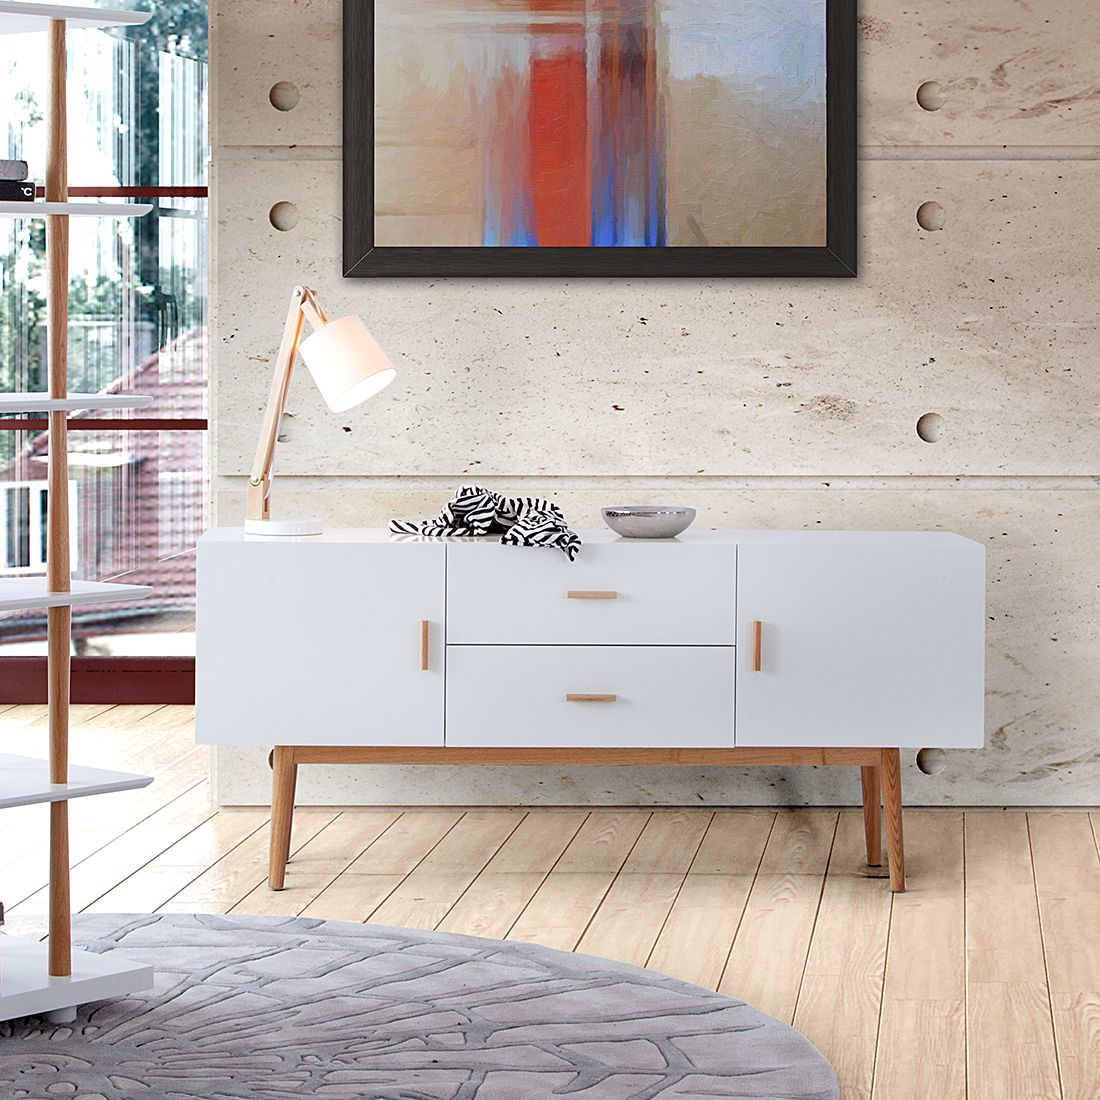 Sideboards Lugano Sideboard Braun Walnuss Interior Highboard Holz Wei Top Interior Design Mit Holz Und